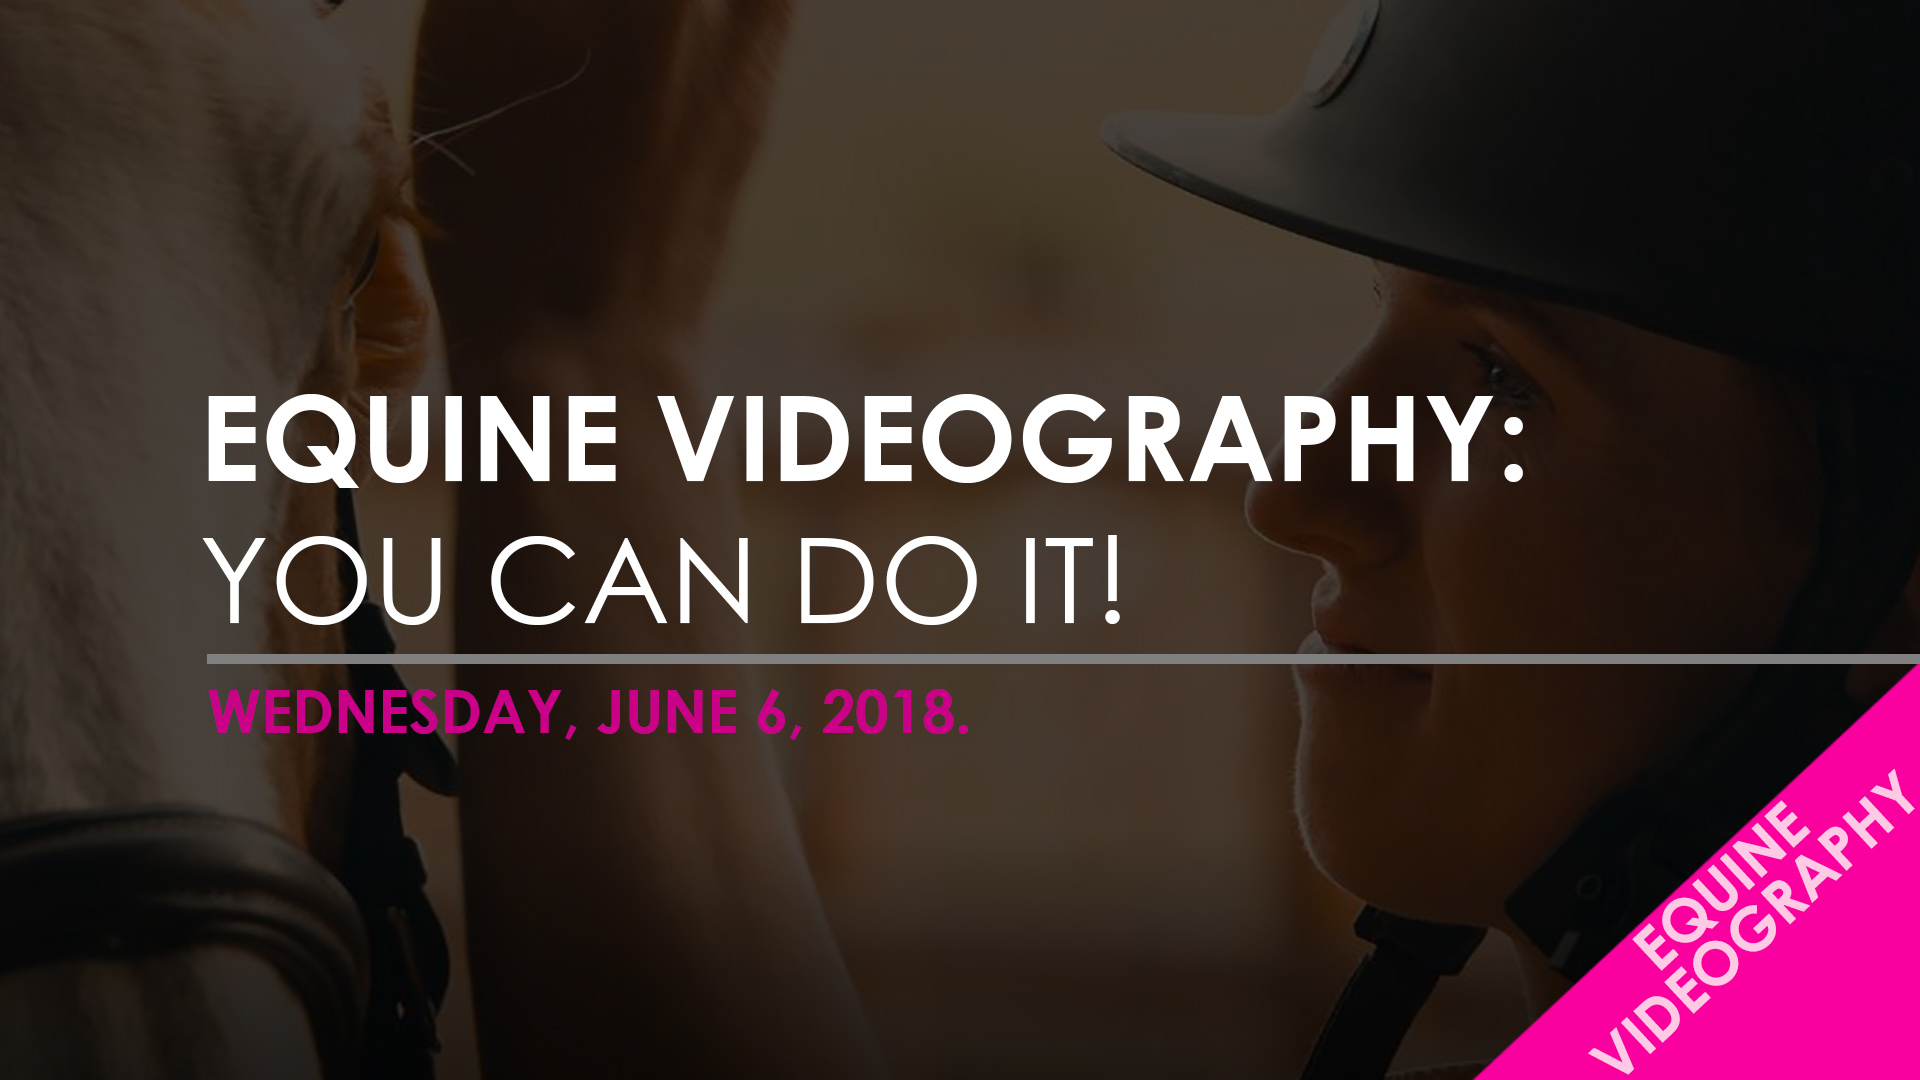 Blog Template - EQUINE VIDEOGRAPHY - YOU CAN DO IT.jpg